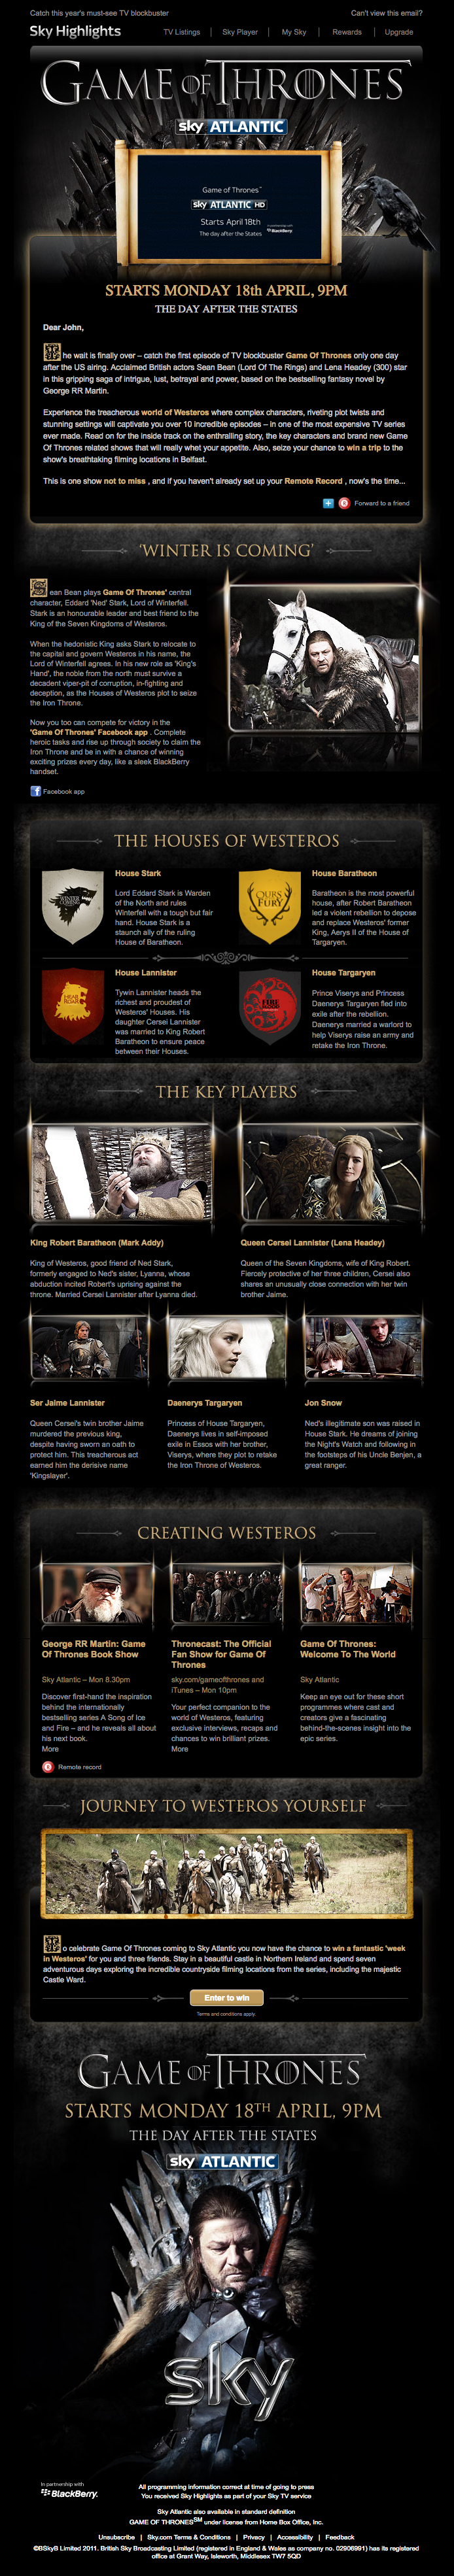 Game of Thrones: Video in email